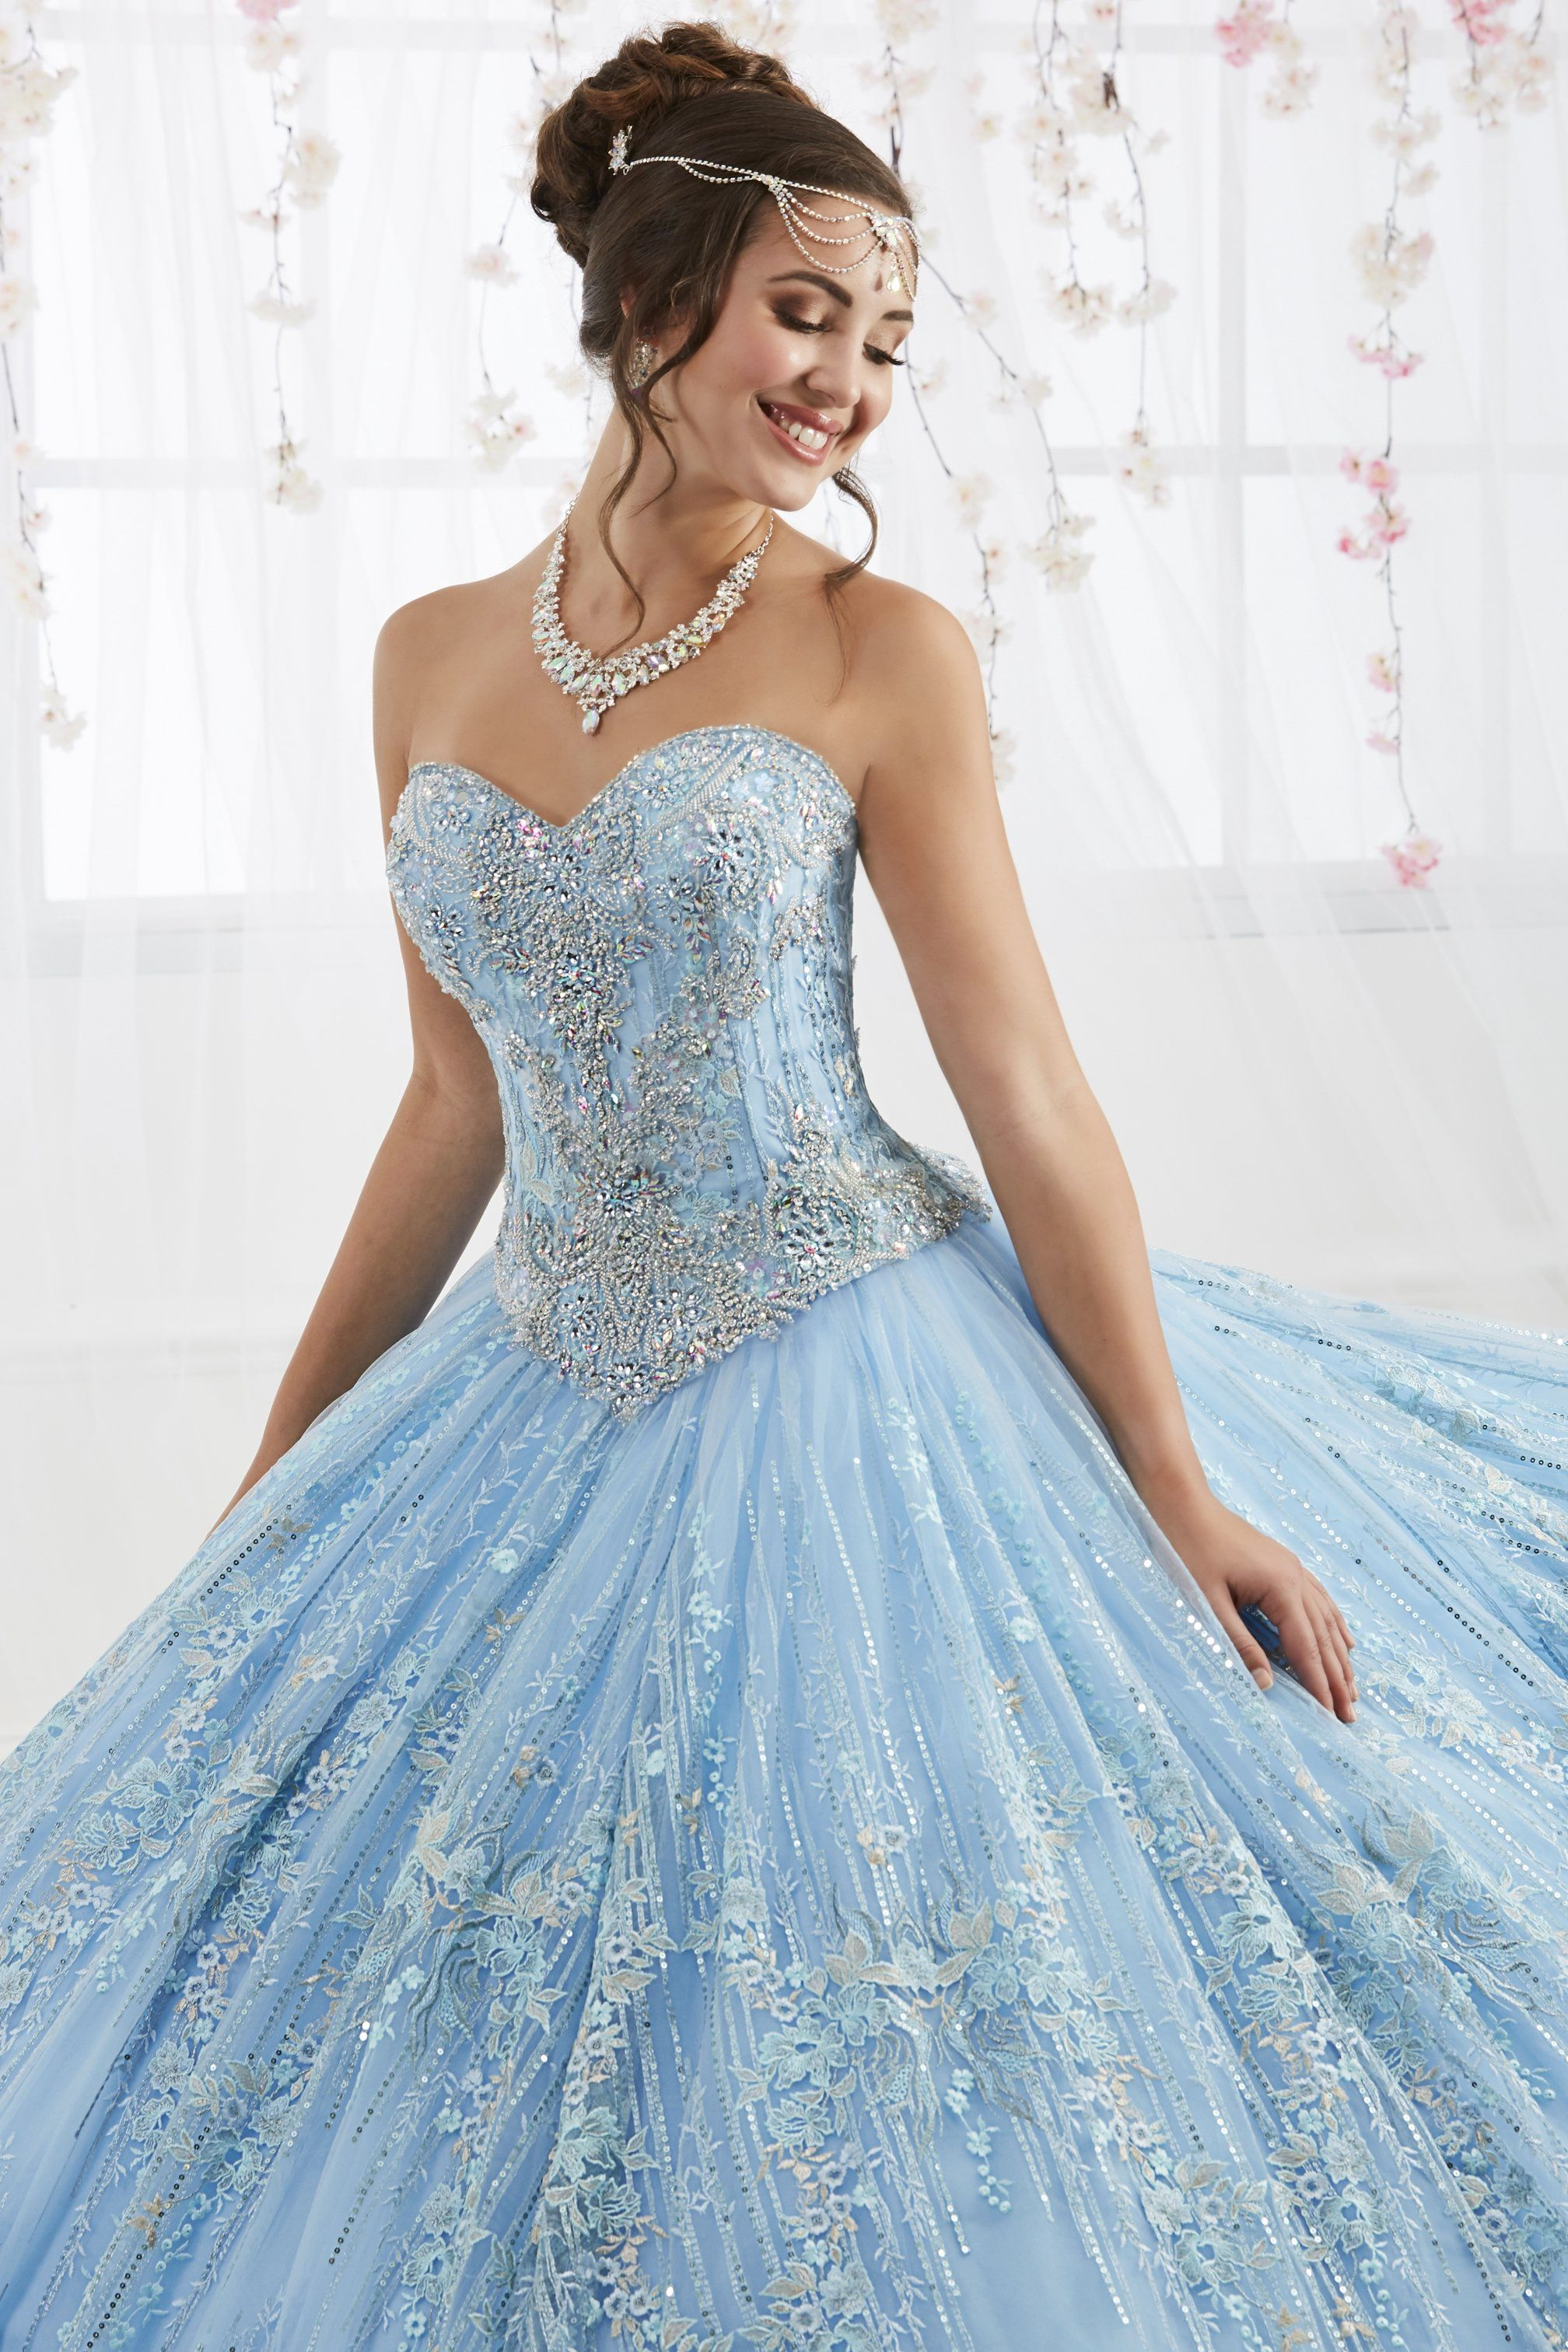 Twopiece quinceanera dress with short skirt by house of wu in